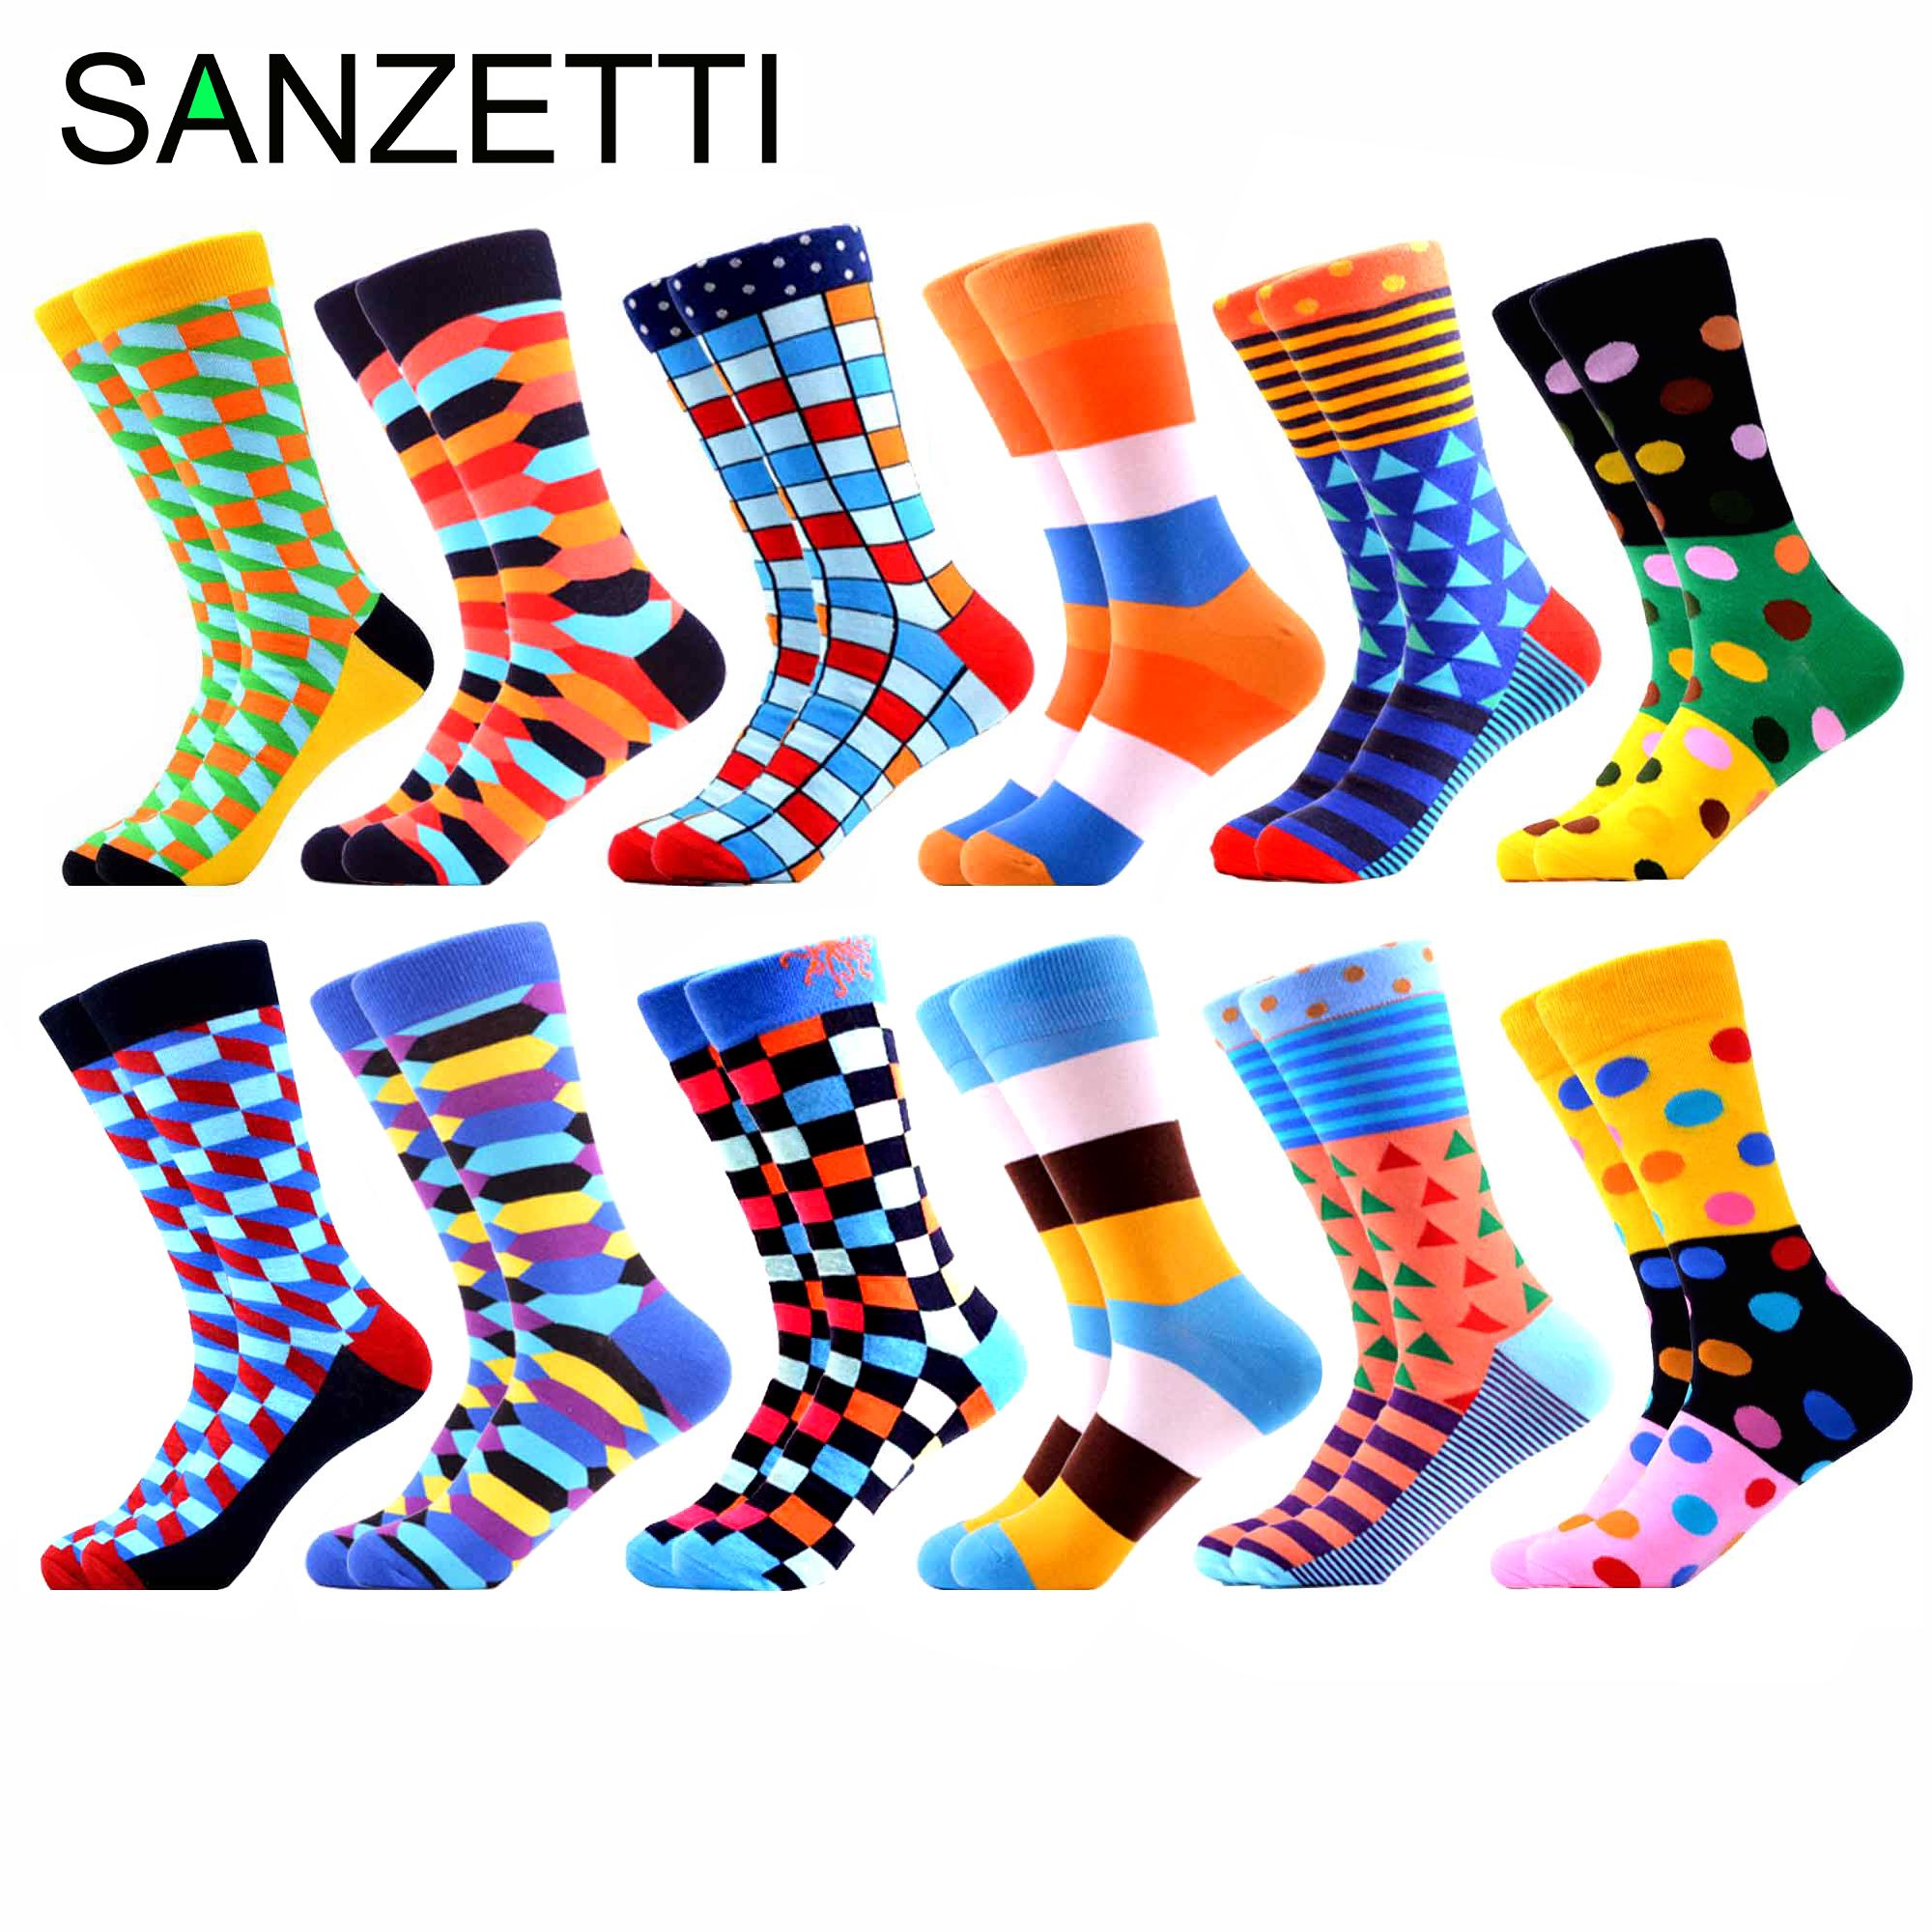 SANZETTI 12 Pairs/Lot Men Colorful Combed Cotton Funny Crew Socks High Quality Streetwear Style Socks Novelty Gift Happpy Socks